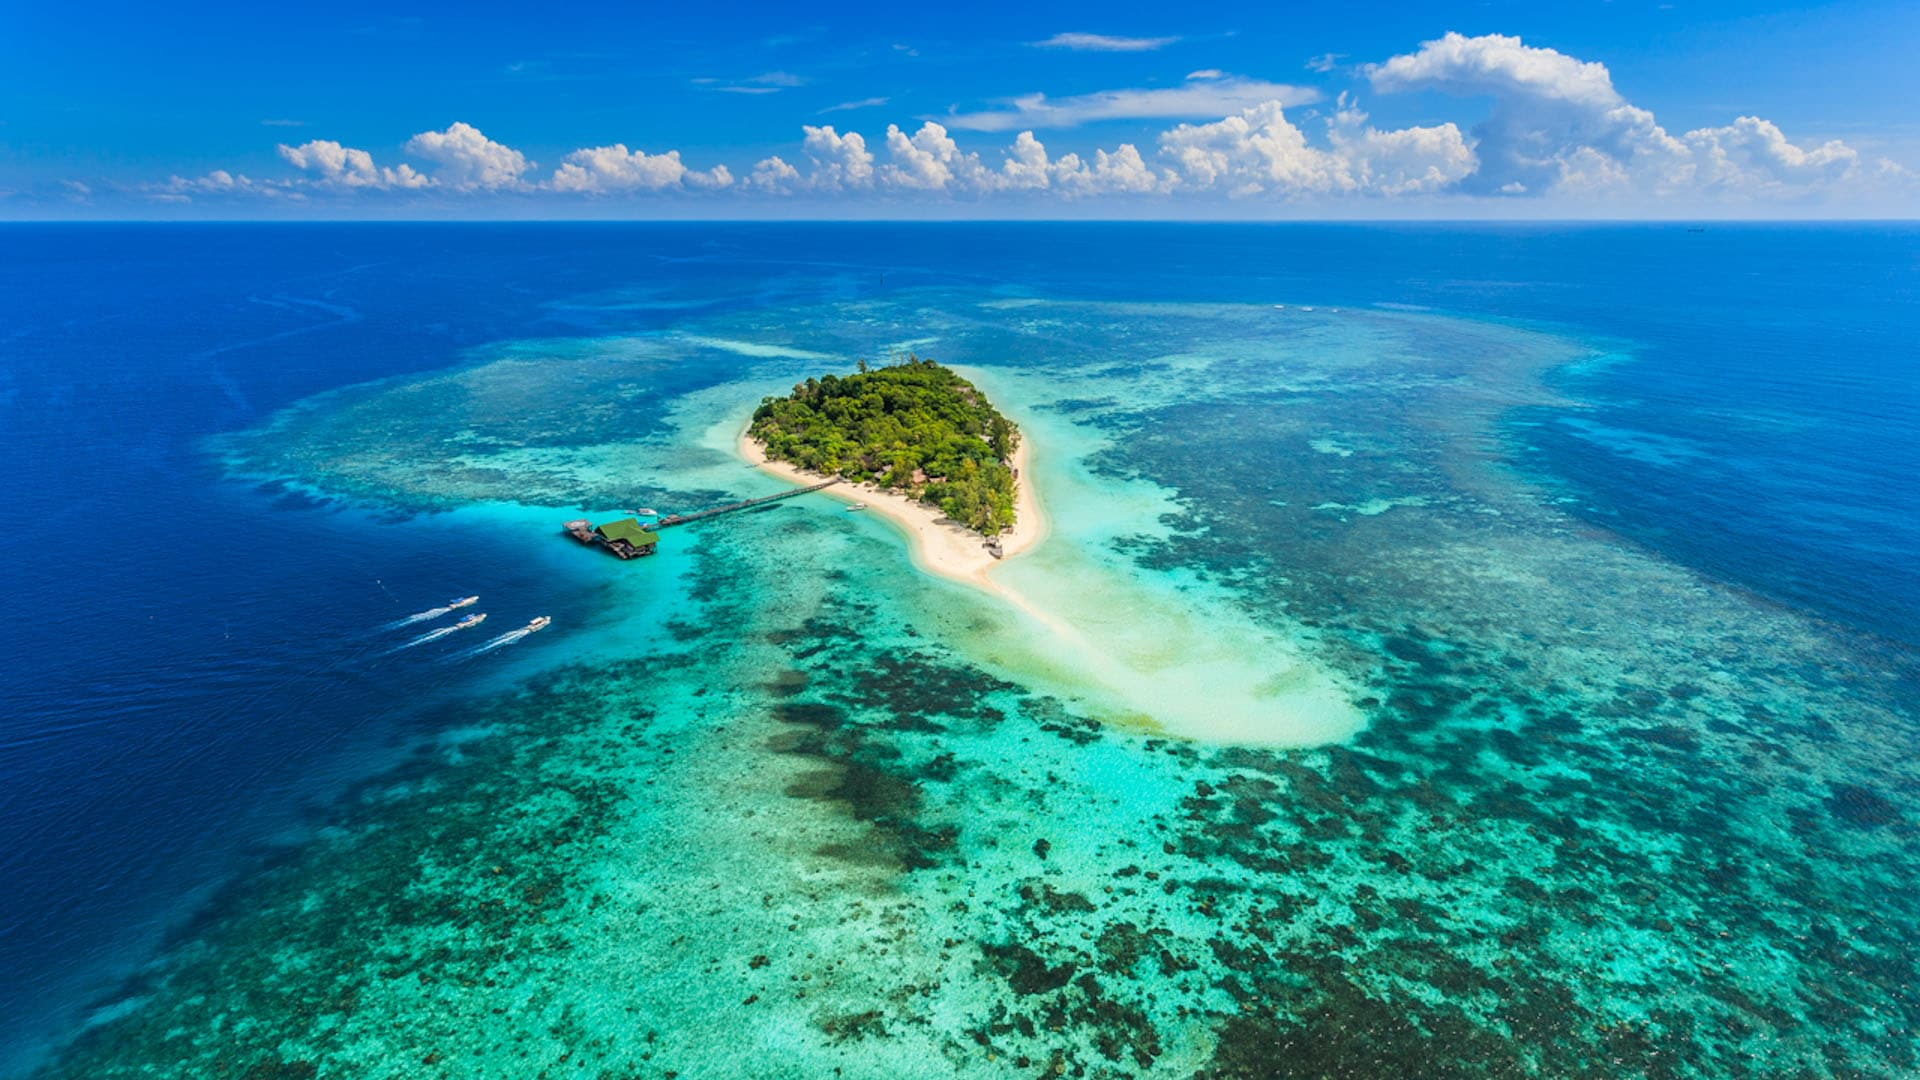 7 best diving spots in Malaysia for unforgettable underwater experiences